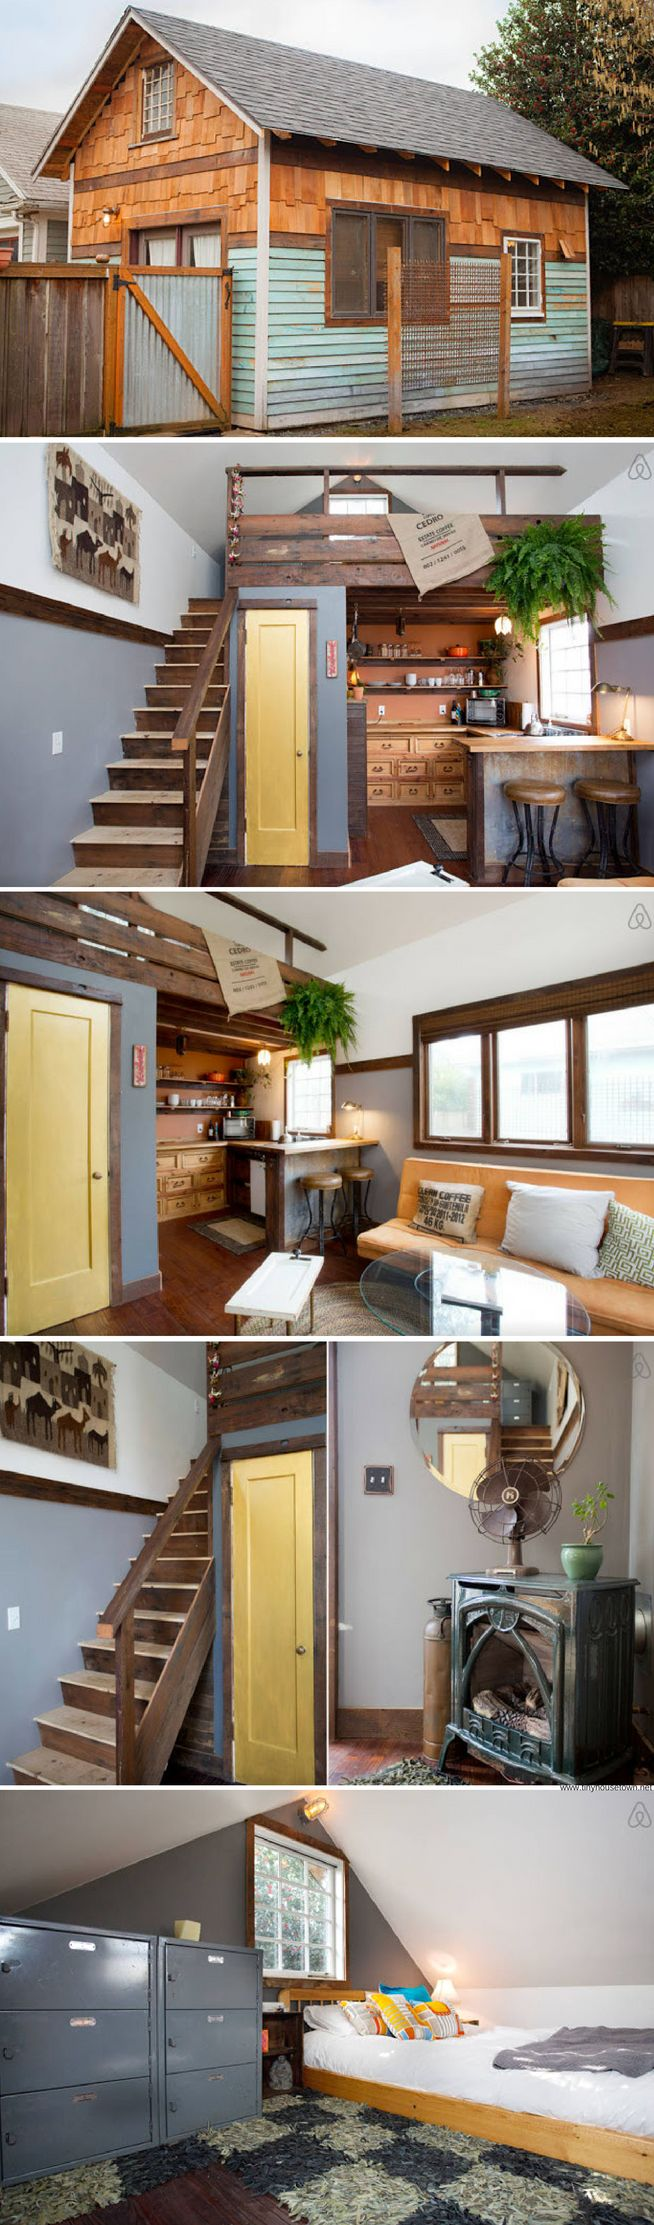 ^ 1000+ ideas about ustic Modern on Pinterest Modern tiny house ...